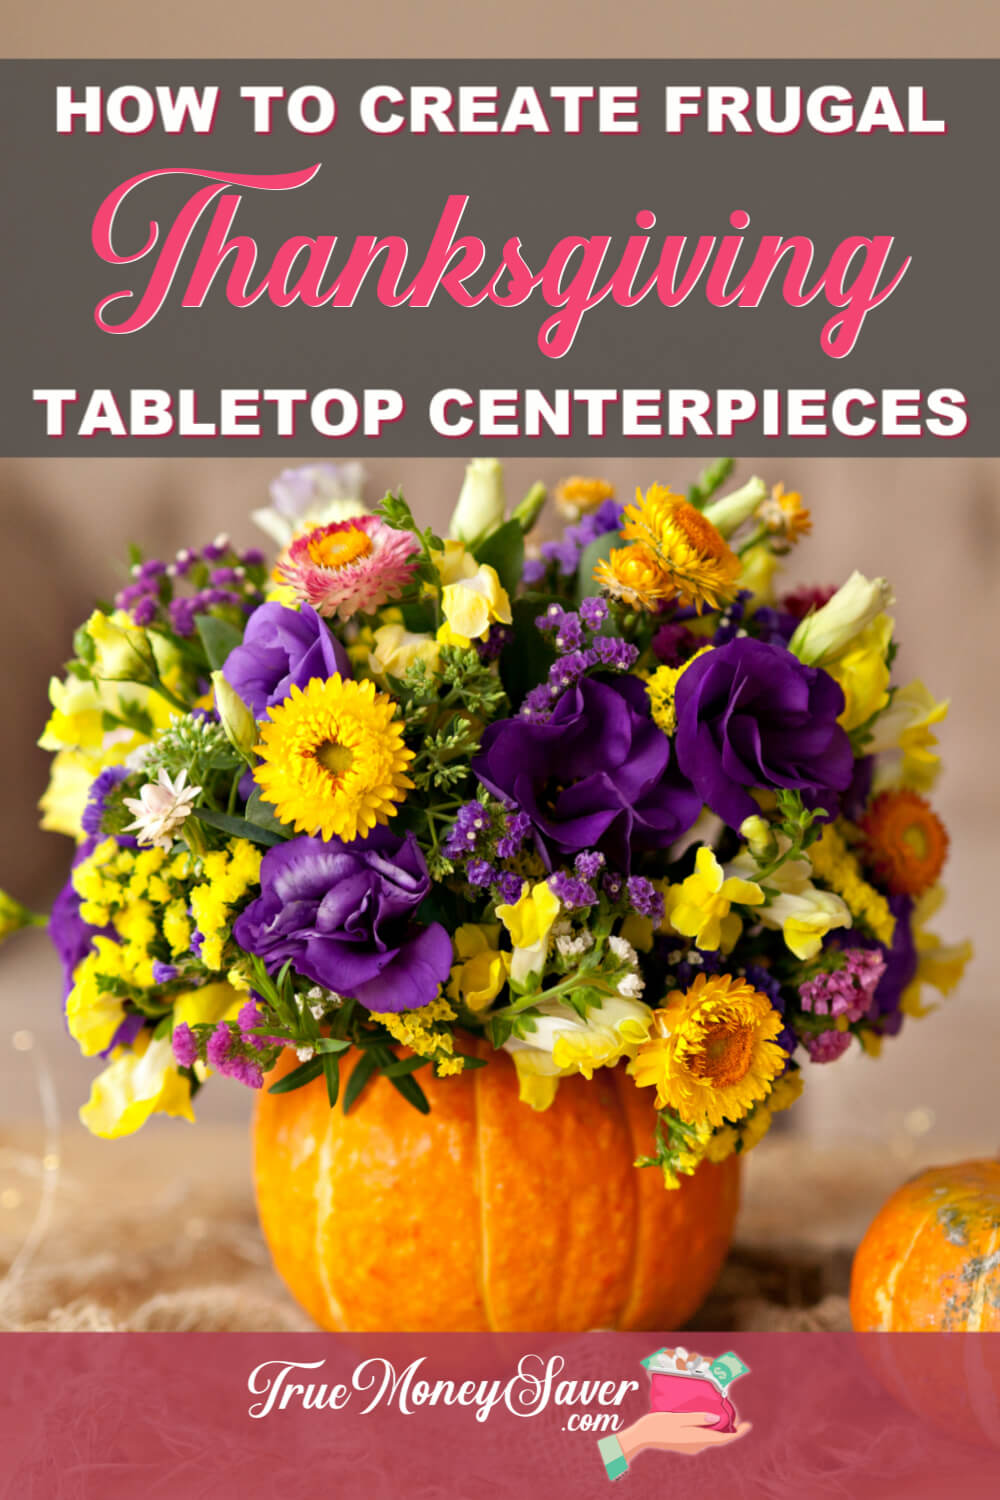 Get started on your Thanksgiving tabletop decor with these simple DIY Thanksgiving centerpiece ideas! Your Thanksgiving tabletop centerpieces will look great with these simple Thanksgiving centerpiece instructions! Let\'s make your Thanksgiving table pretty with these frugal ideas!  #truemoneysaver #thanksgiving #diy #diycenterpieces #thanksgivingtable #thanksgivingdecor #thanksgivingcenterpiece #tabletopdecor #tabletopcenterpiece